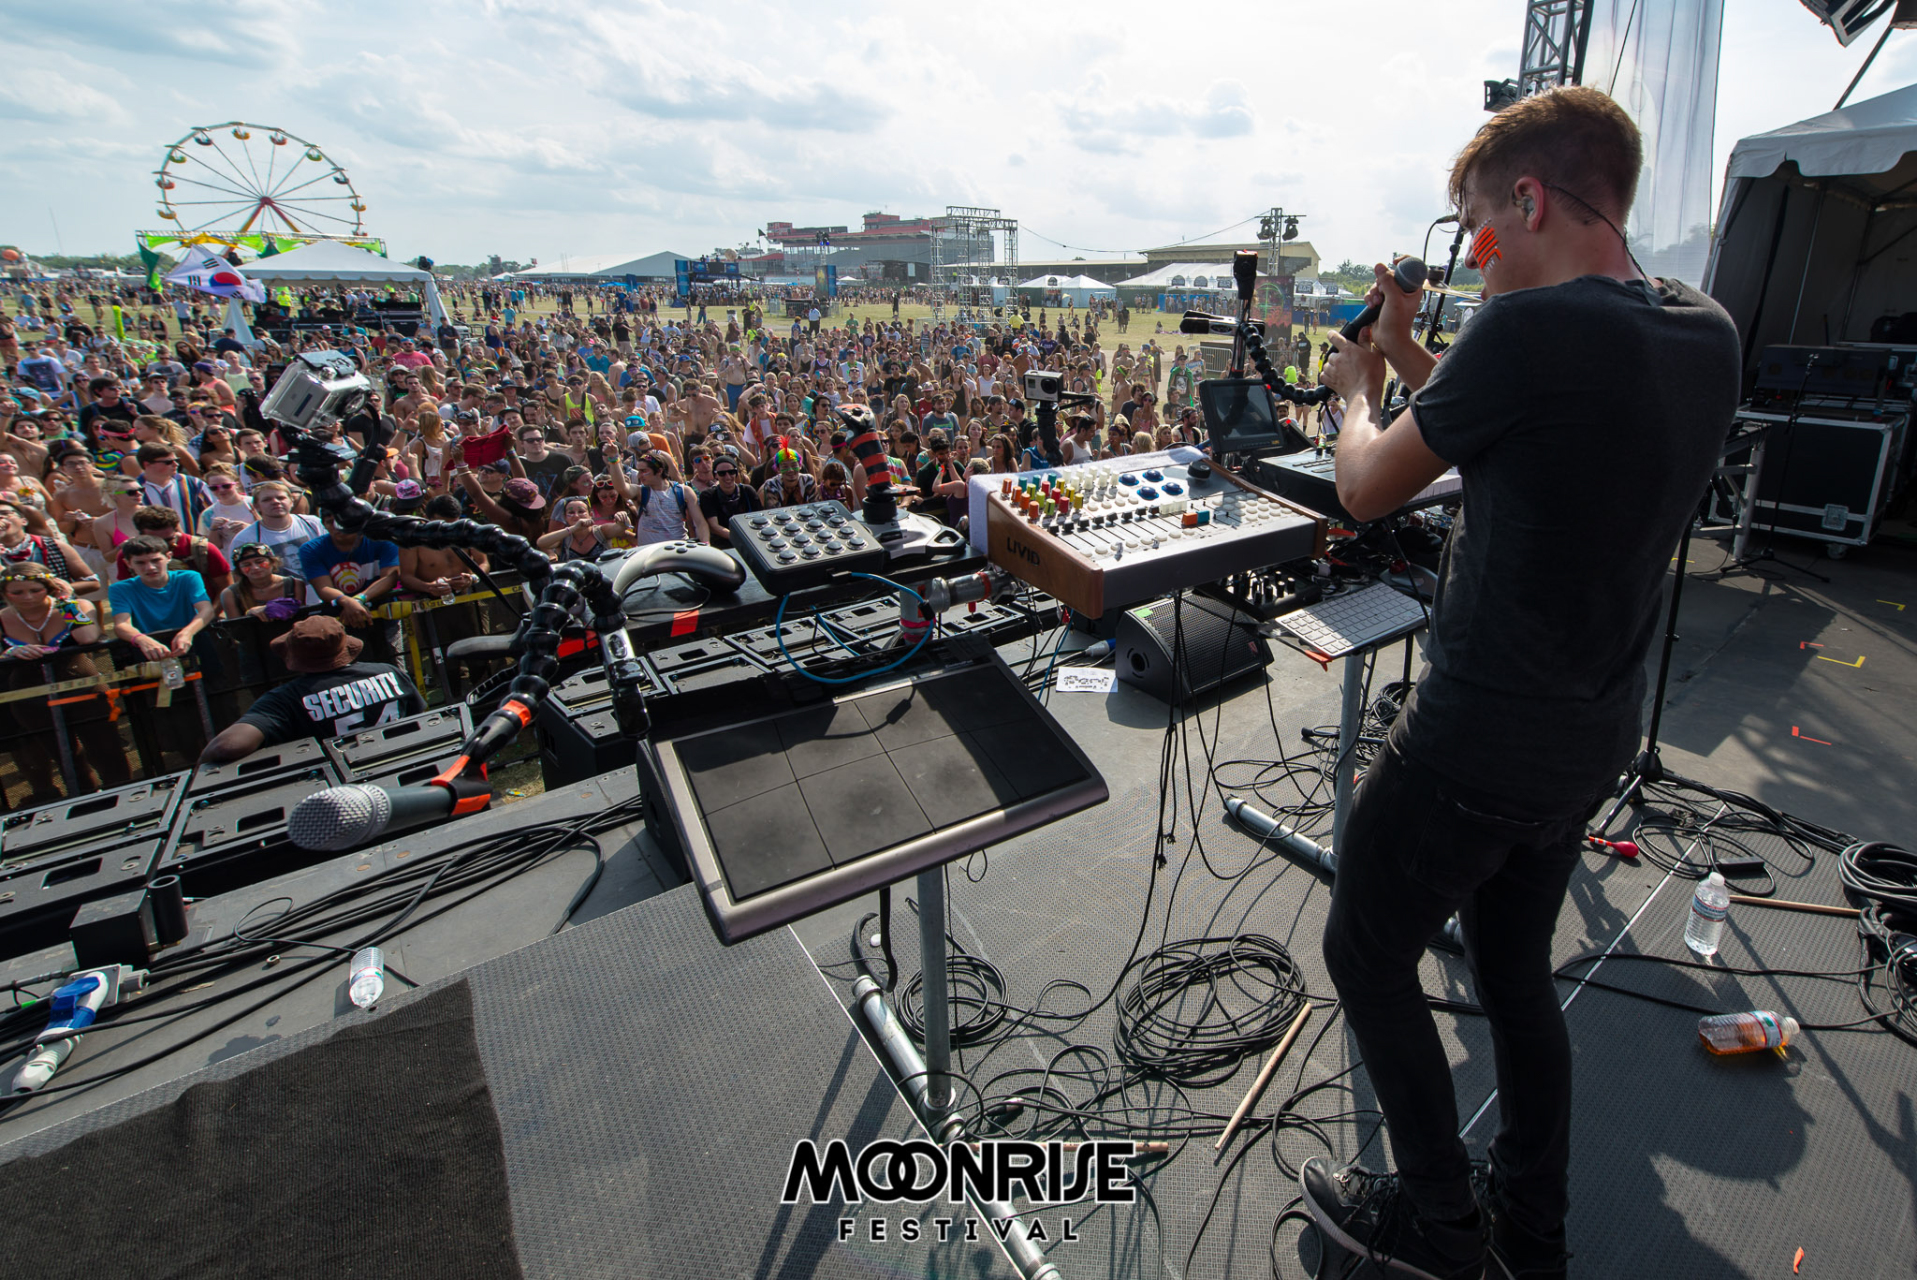 Moonrise_day2-32